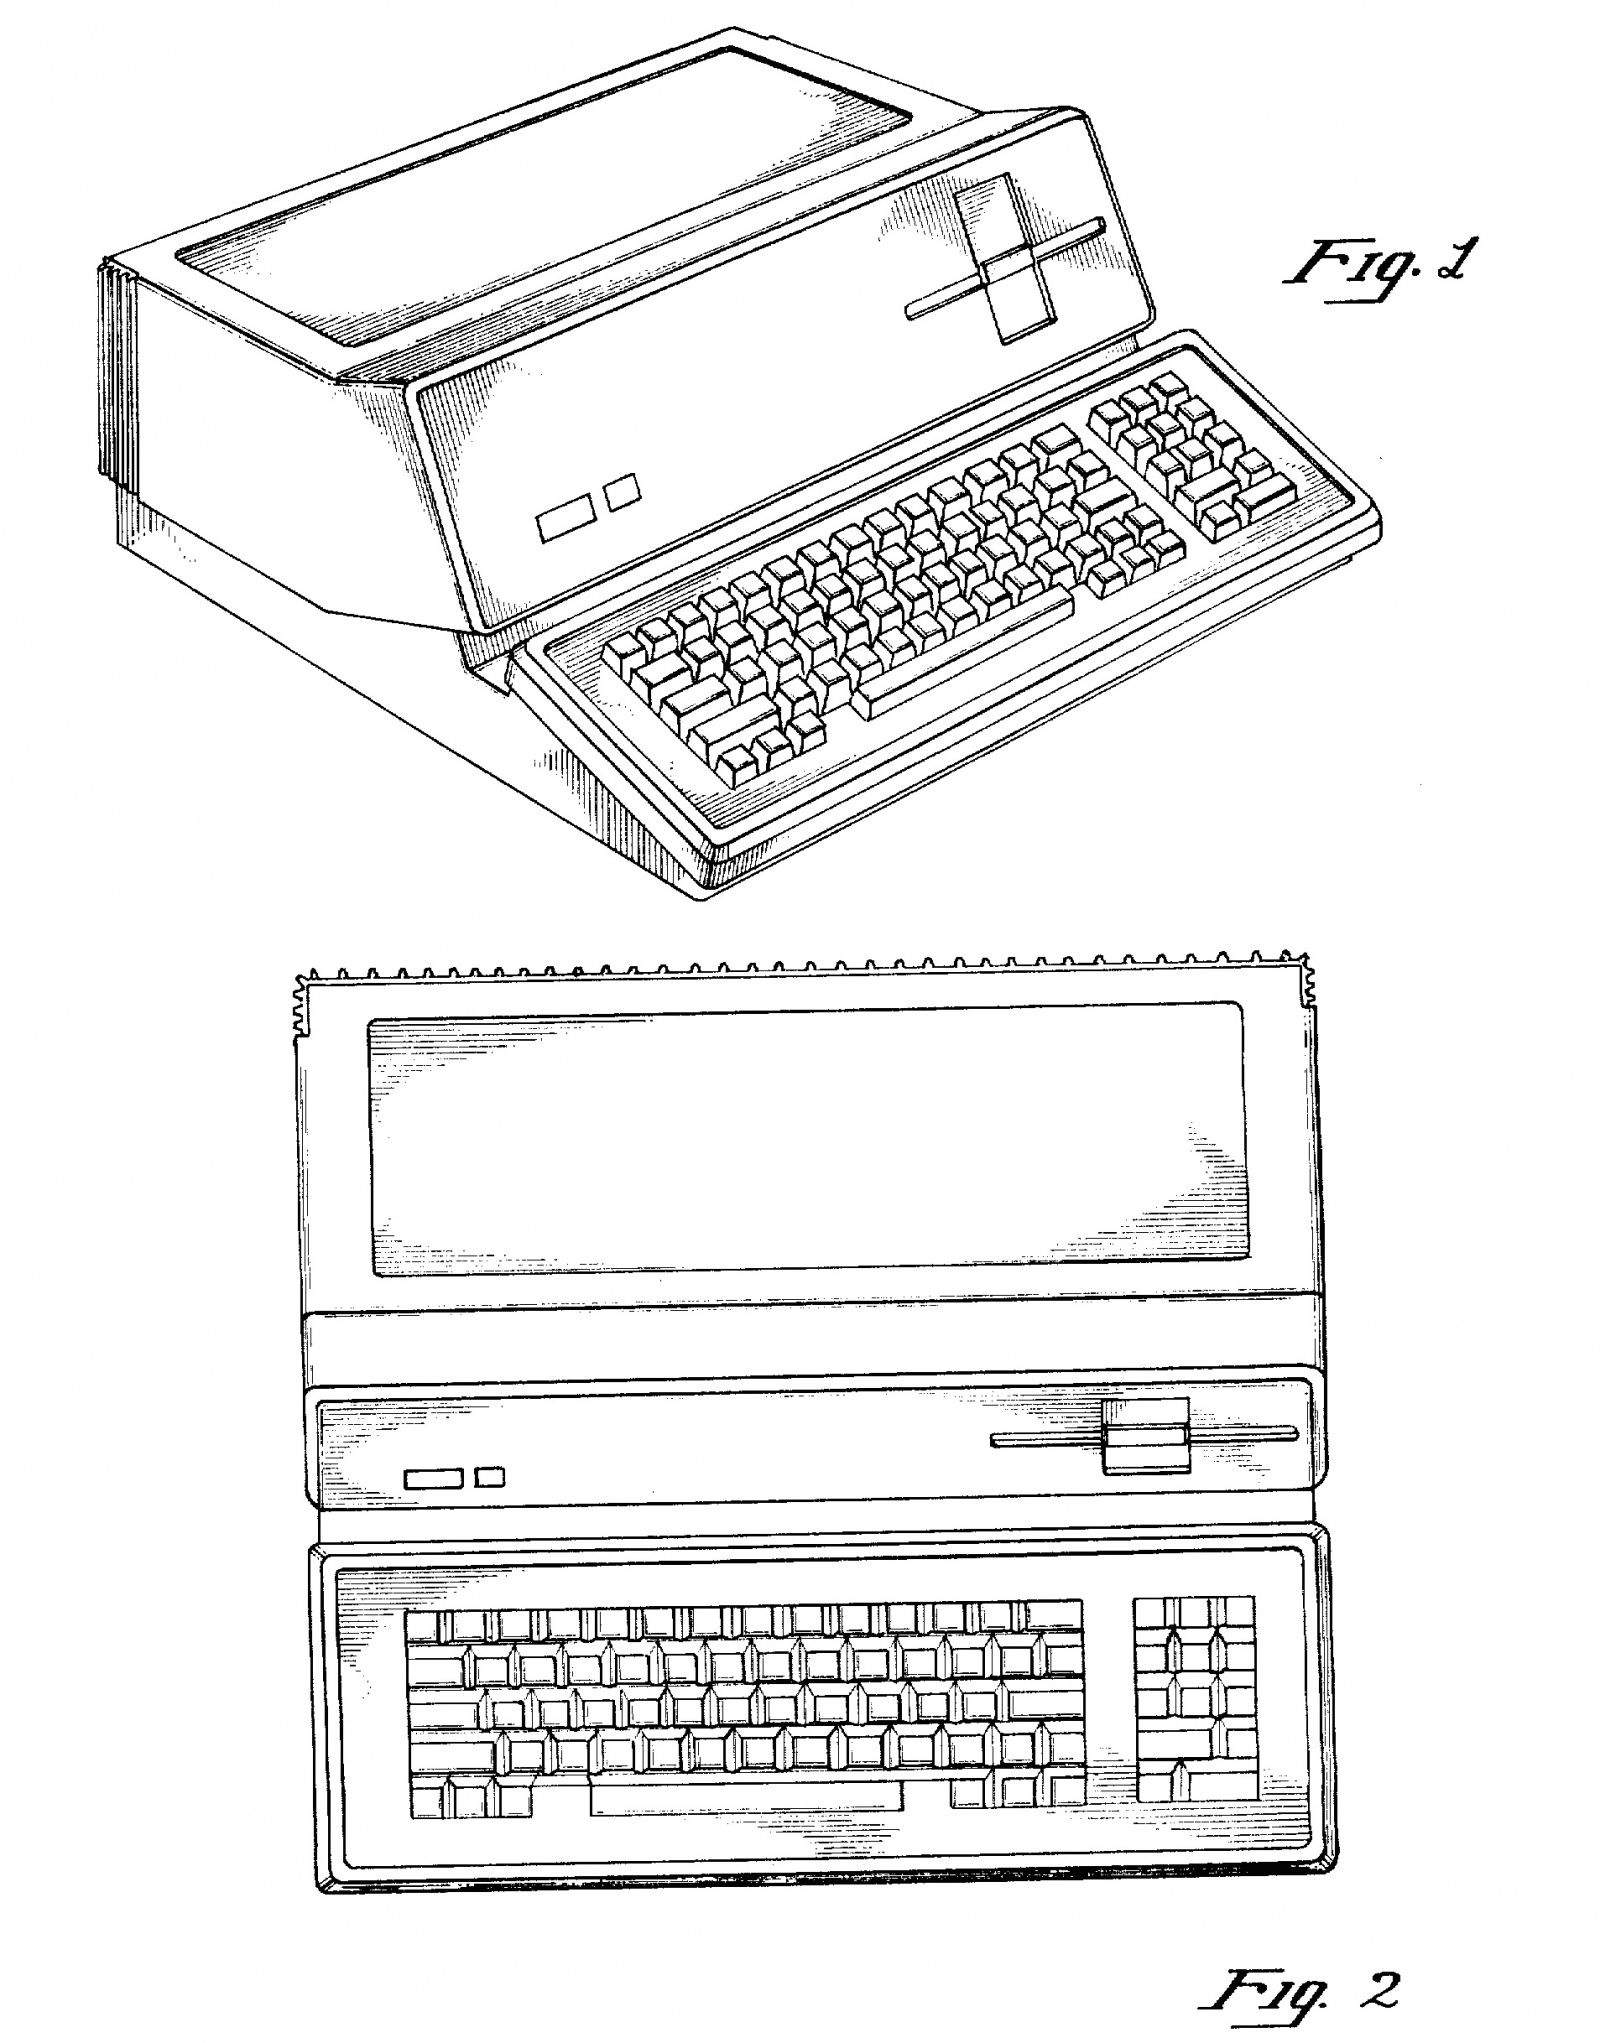 Steve Jobs's first patent for a 'Personal Computer.' Photo: US Patent Office